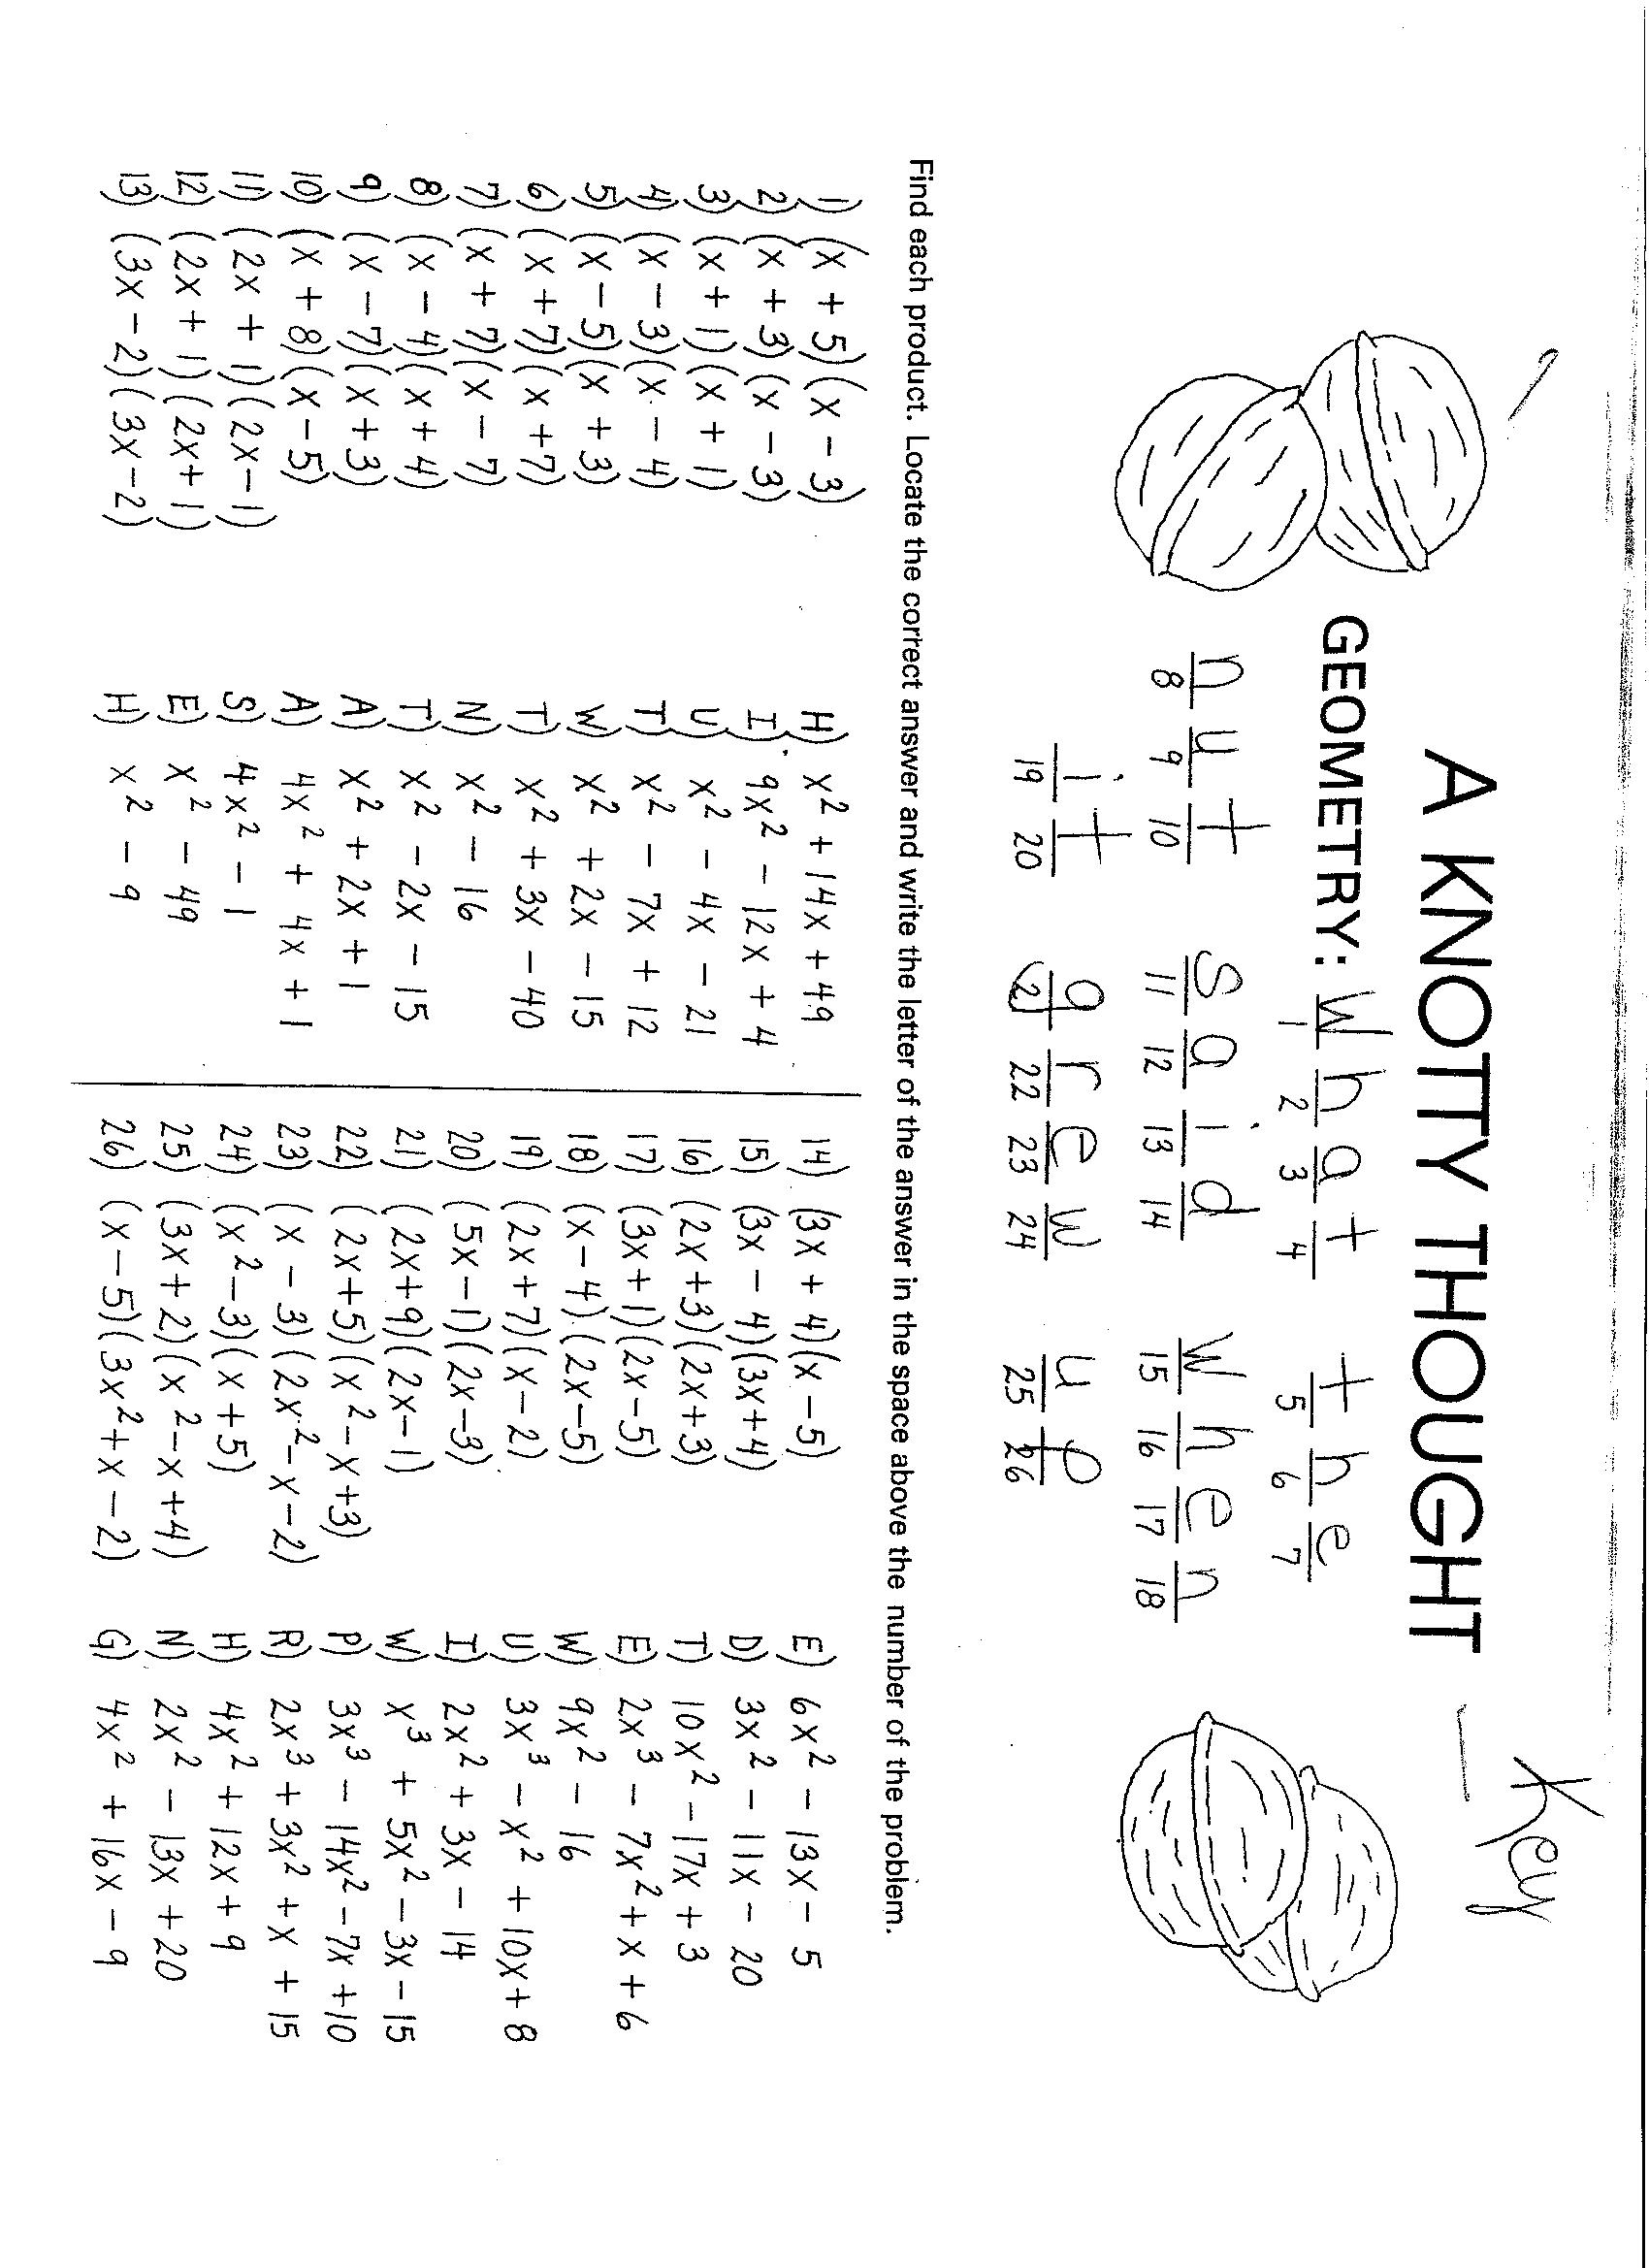 Worksheet Multiplying And Dividing Polynomials Worksheet Grass